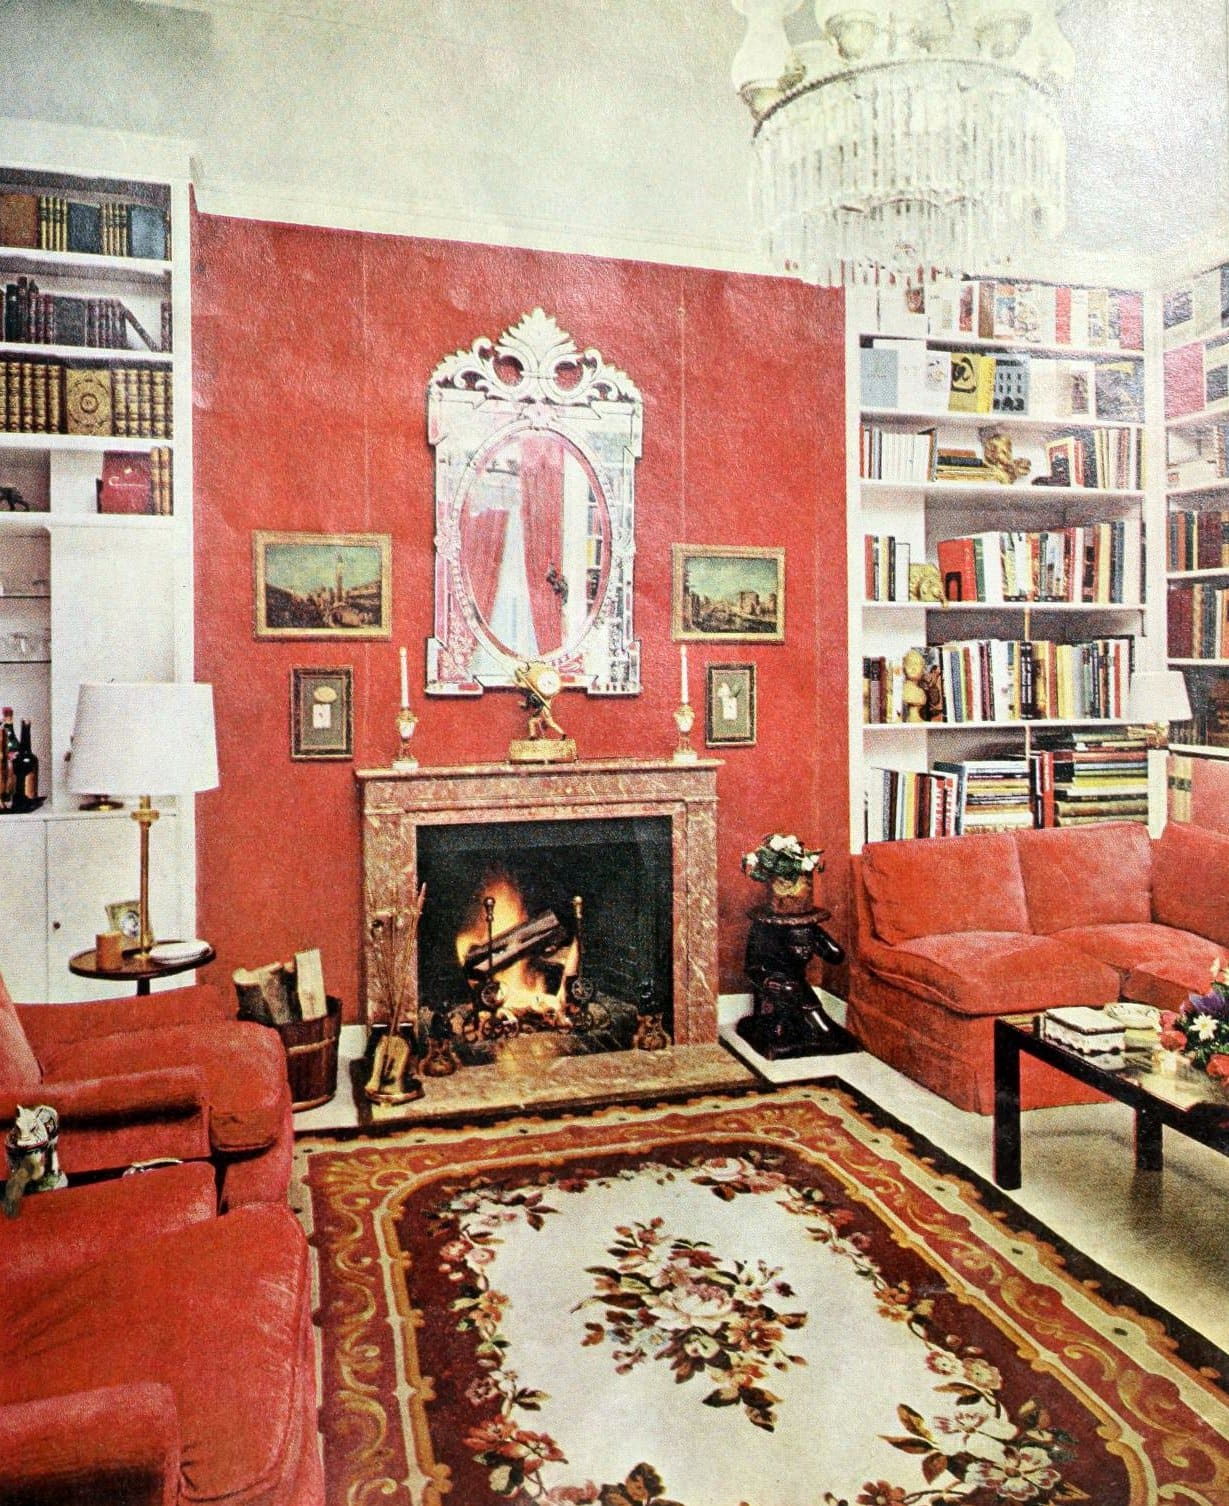 Old-fashioned living room decorating in a 1960s home